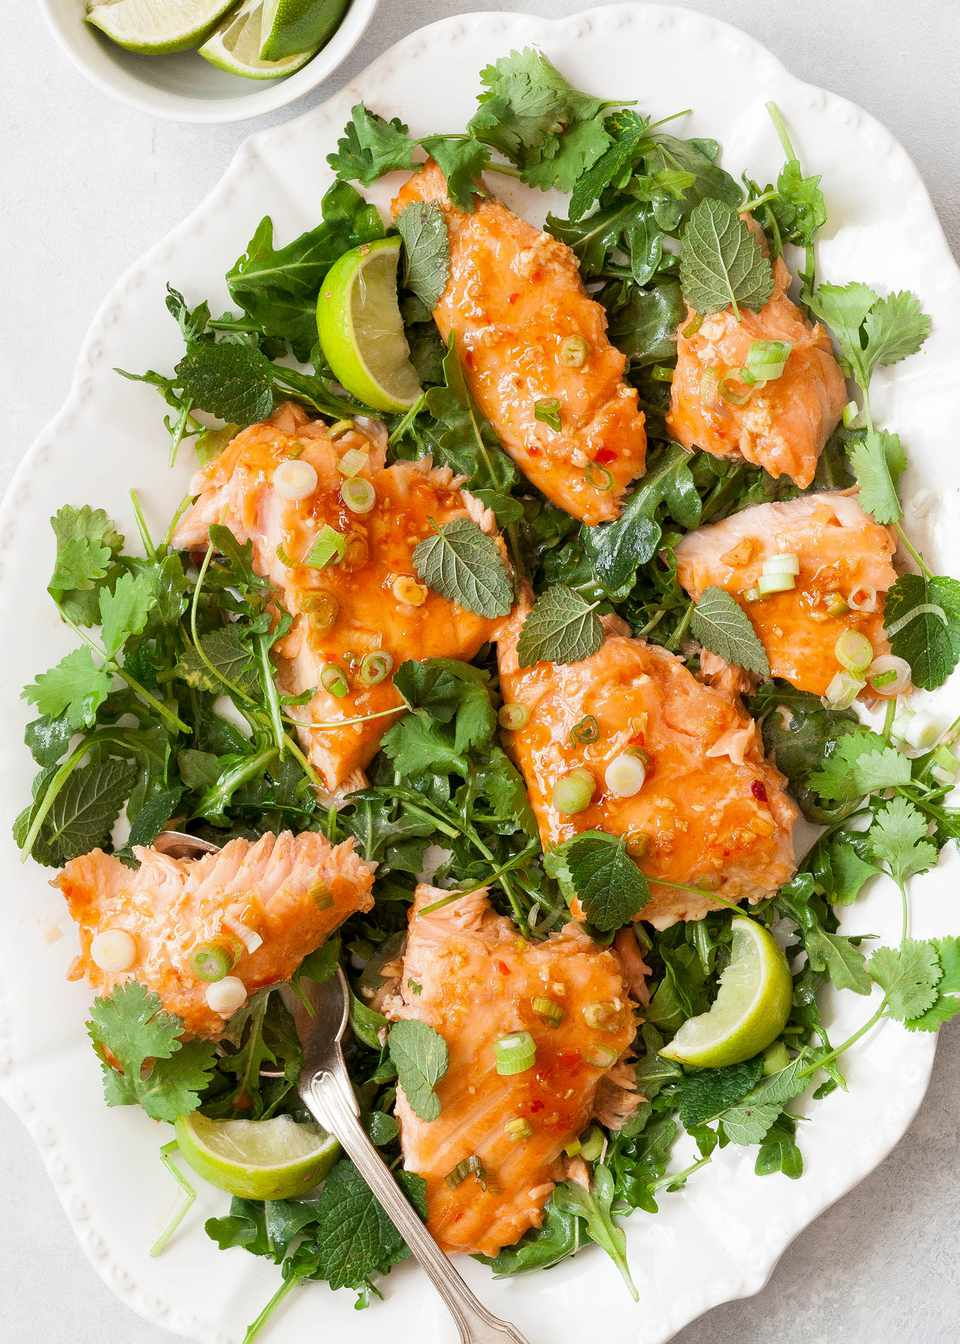 Slow-Roasted Salmon with Sweet Chili Glaze